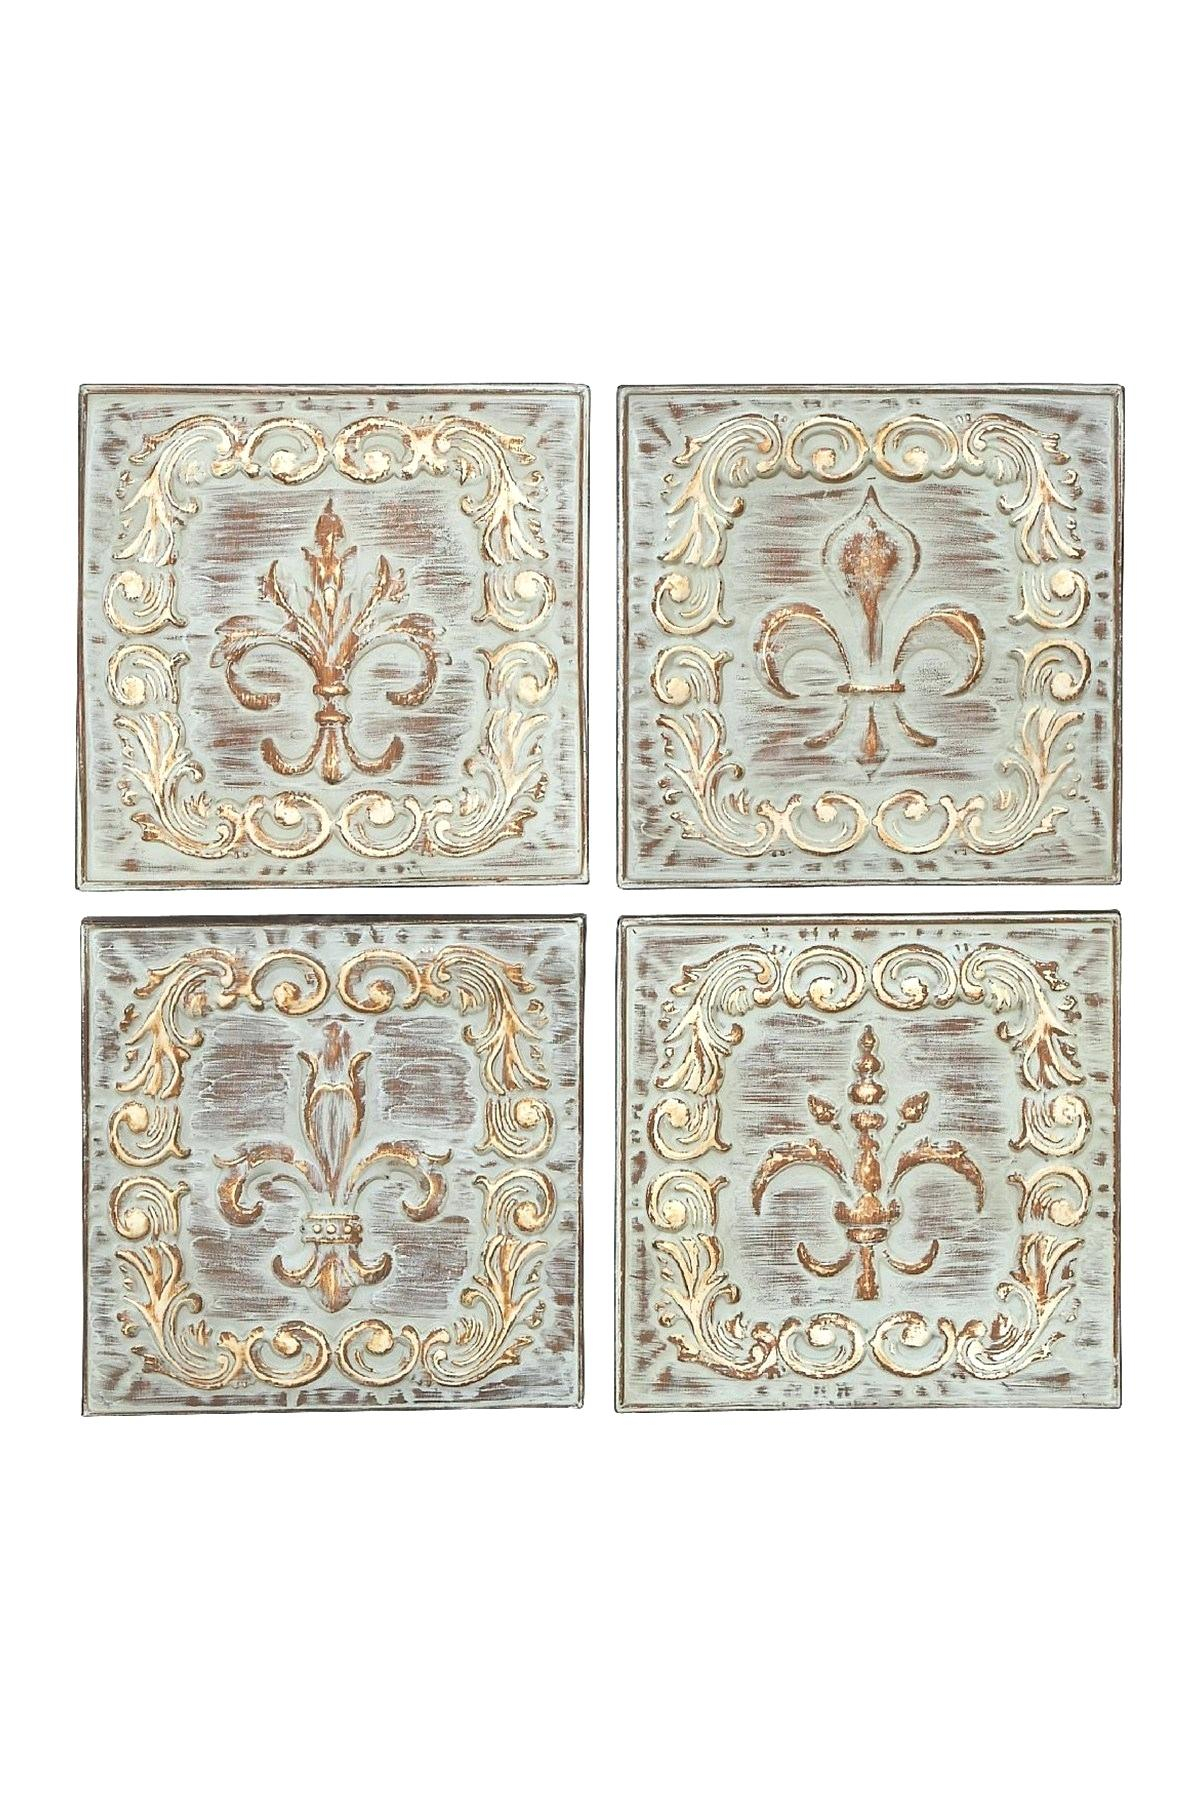 Metal Wall Decor Set Full Size Of Modern Patio Wall Decor Sets Smart Pertaining To Famous 4 Piece Metal Wall Decor Sets (View 8 of 20)